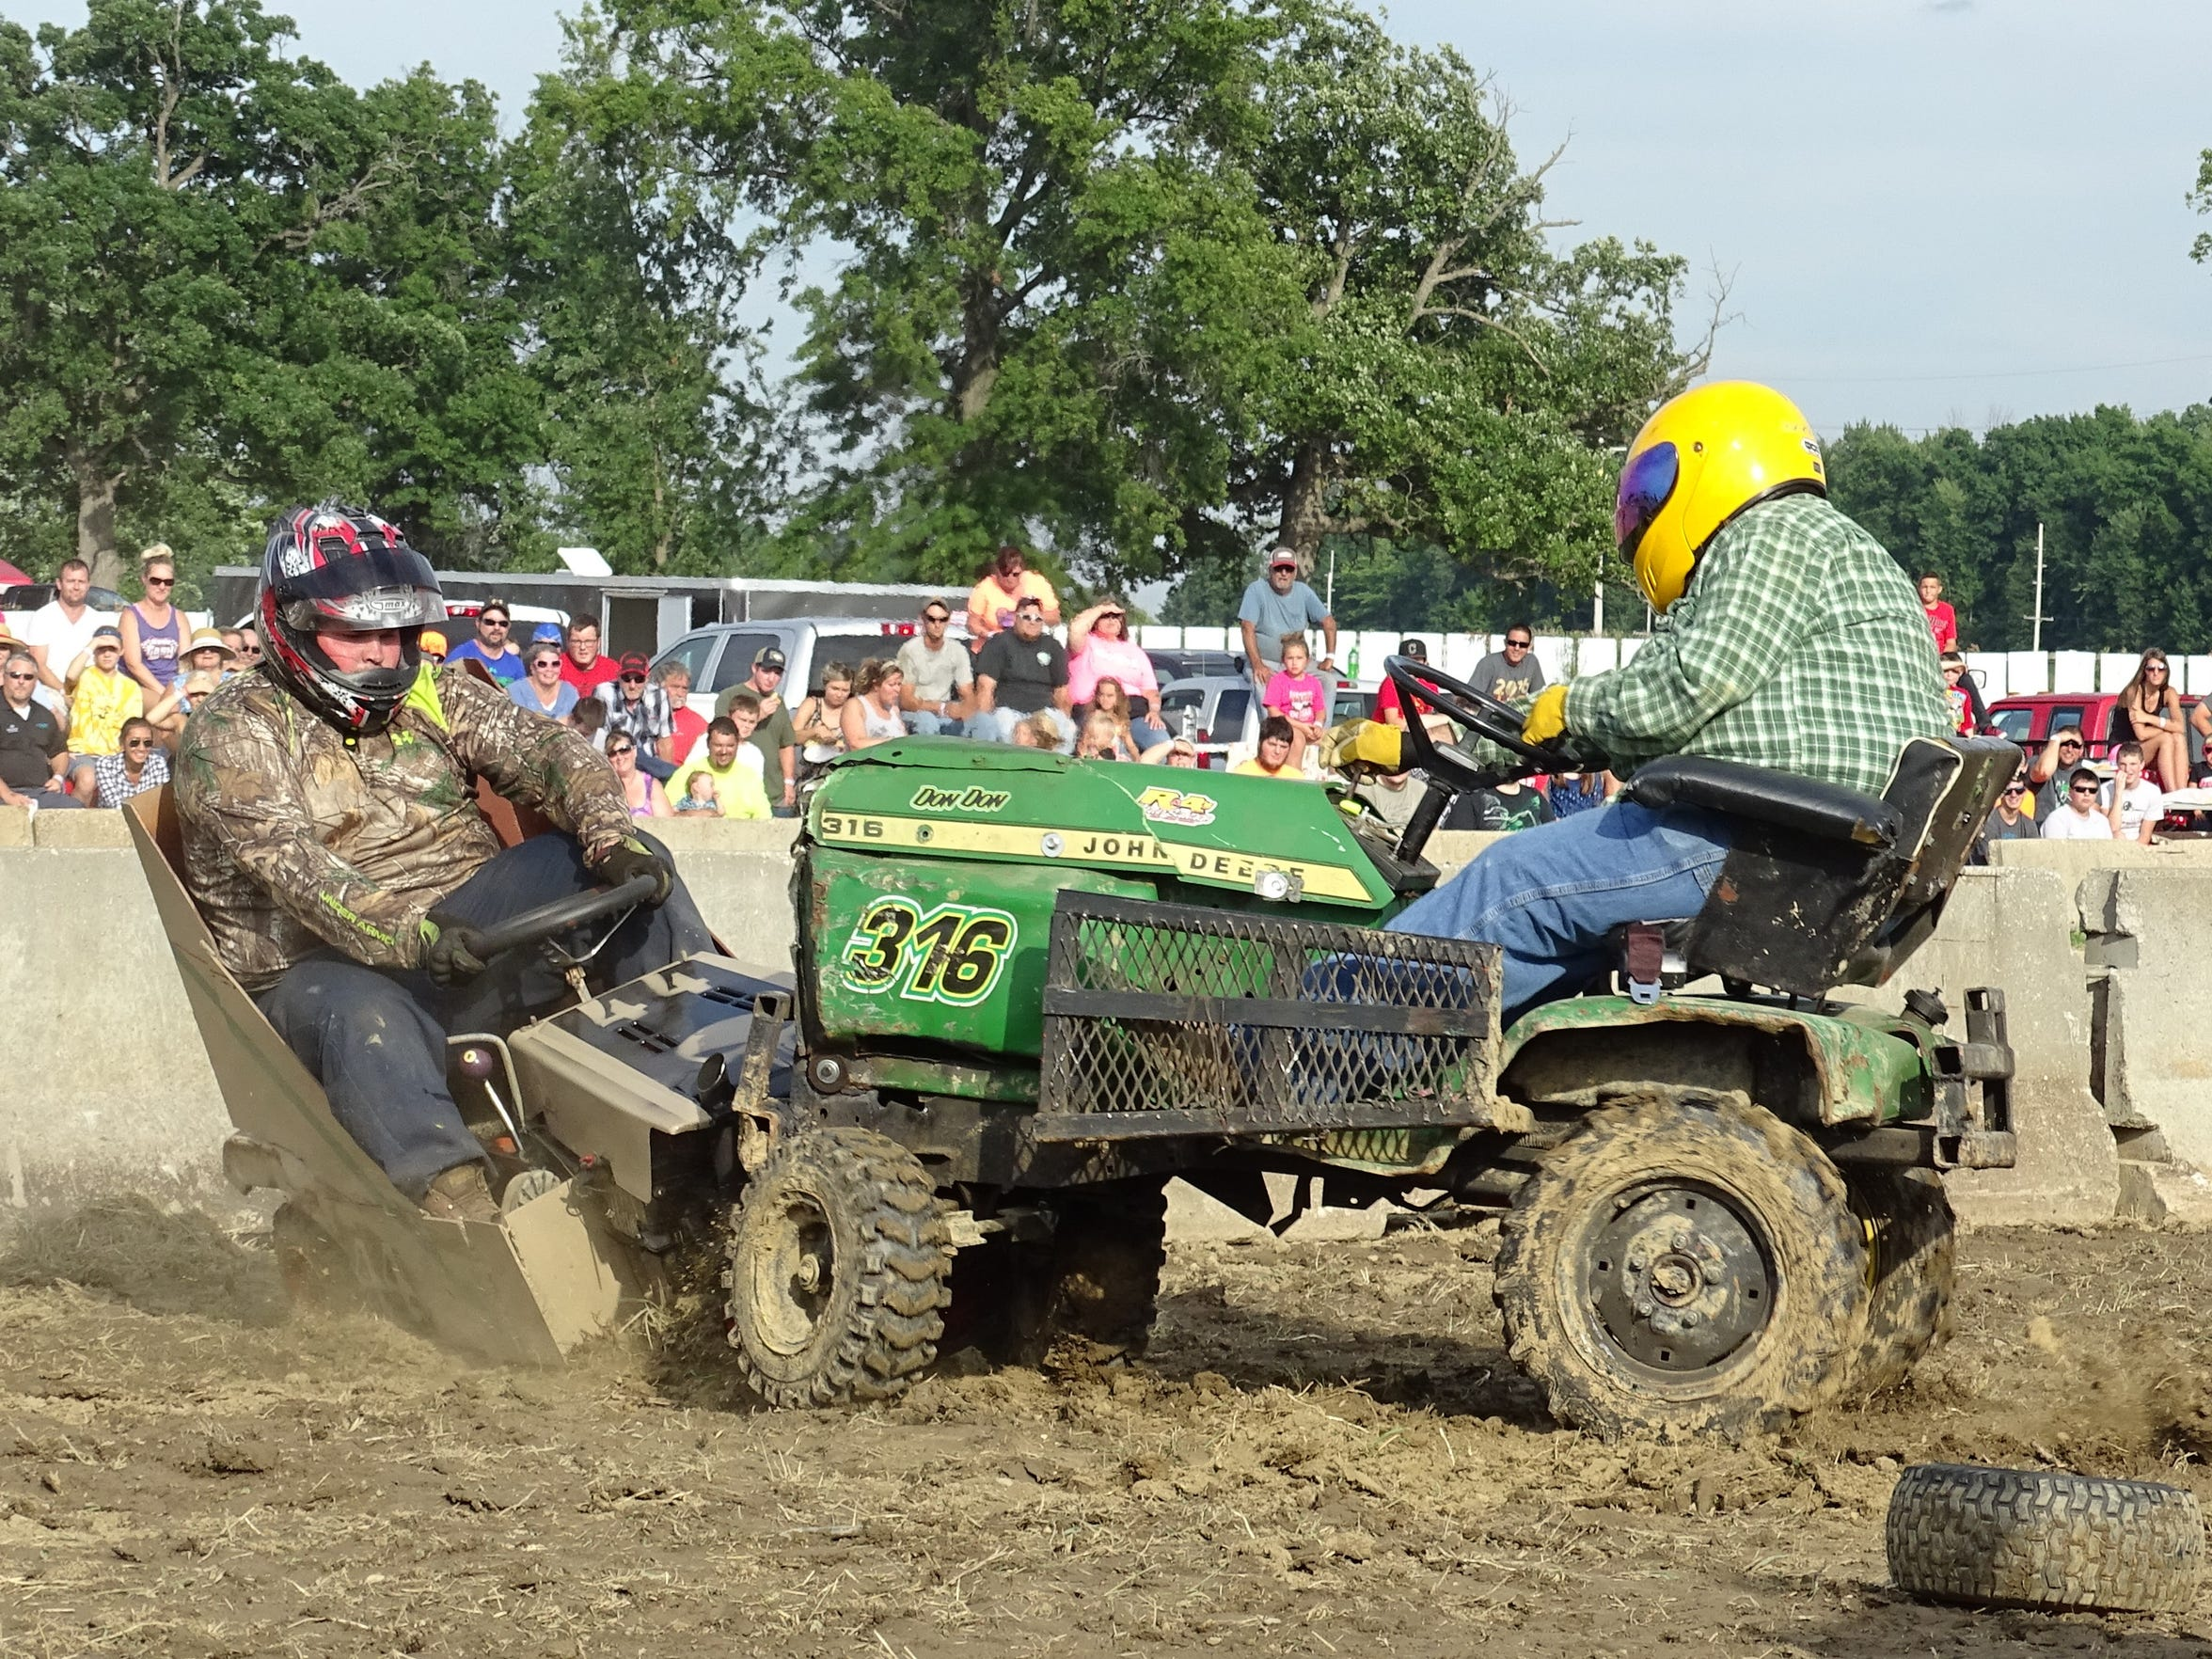 Keith Foor of Marion, left, gets rammed Sunday by Don Walter of Fostoria during the lawn tractor class of the demolition derby at the Crawford County Fair. Walter won the contest.